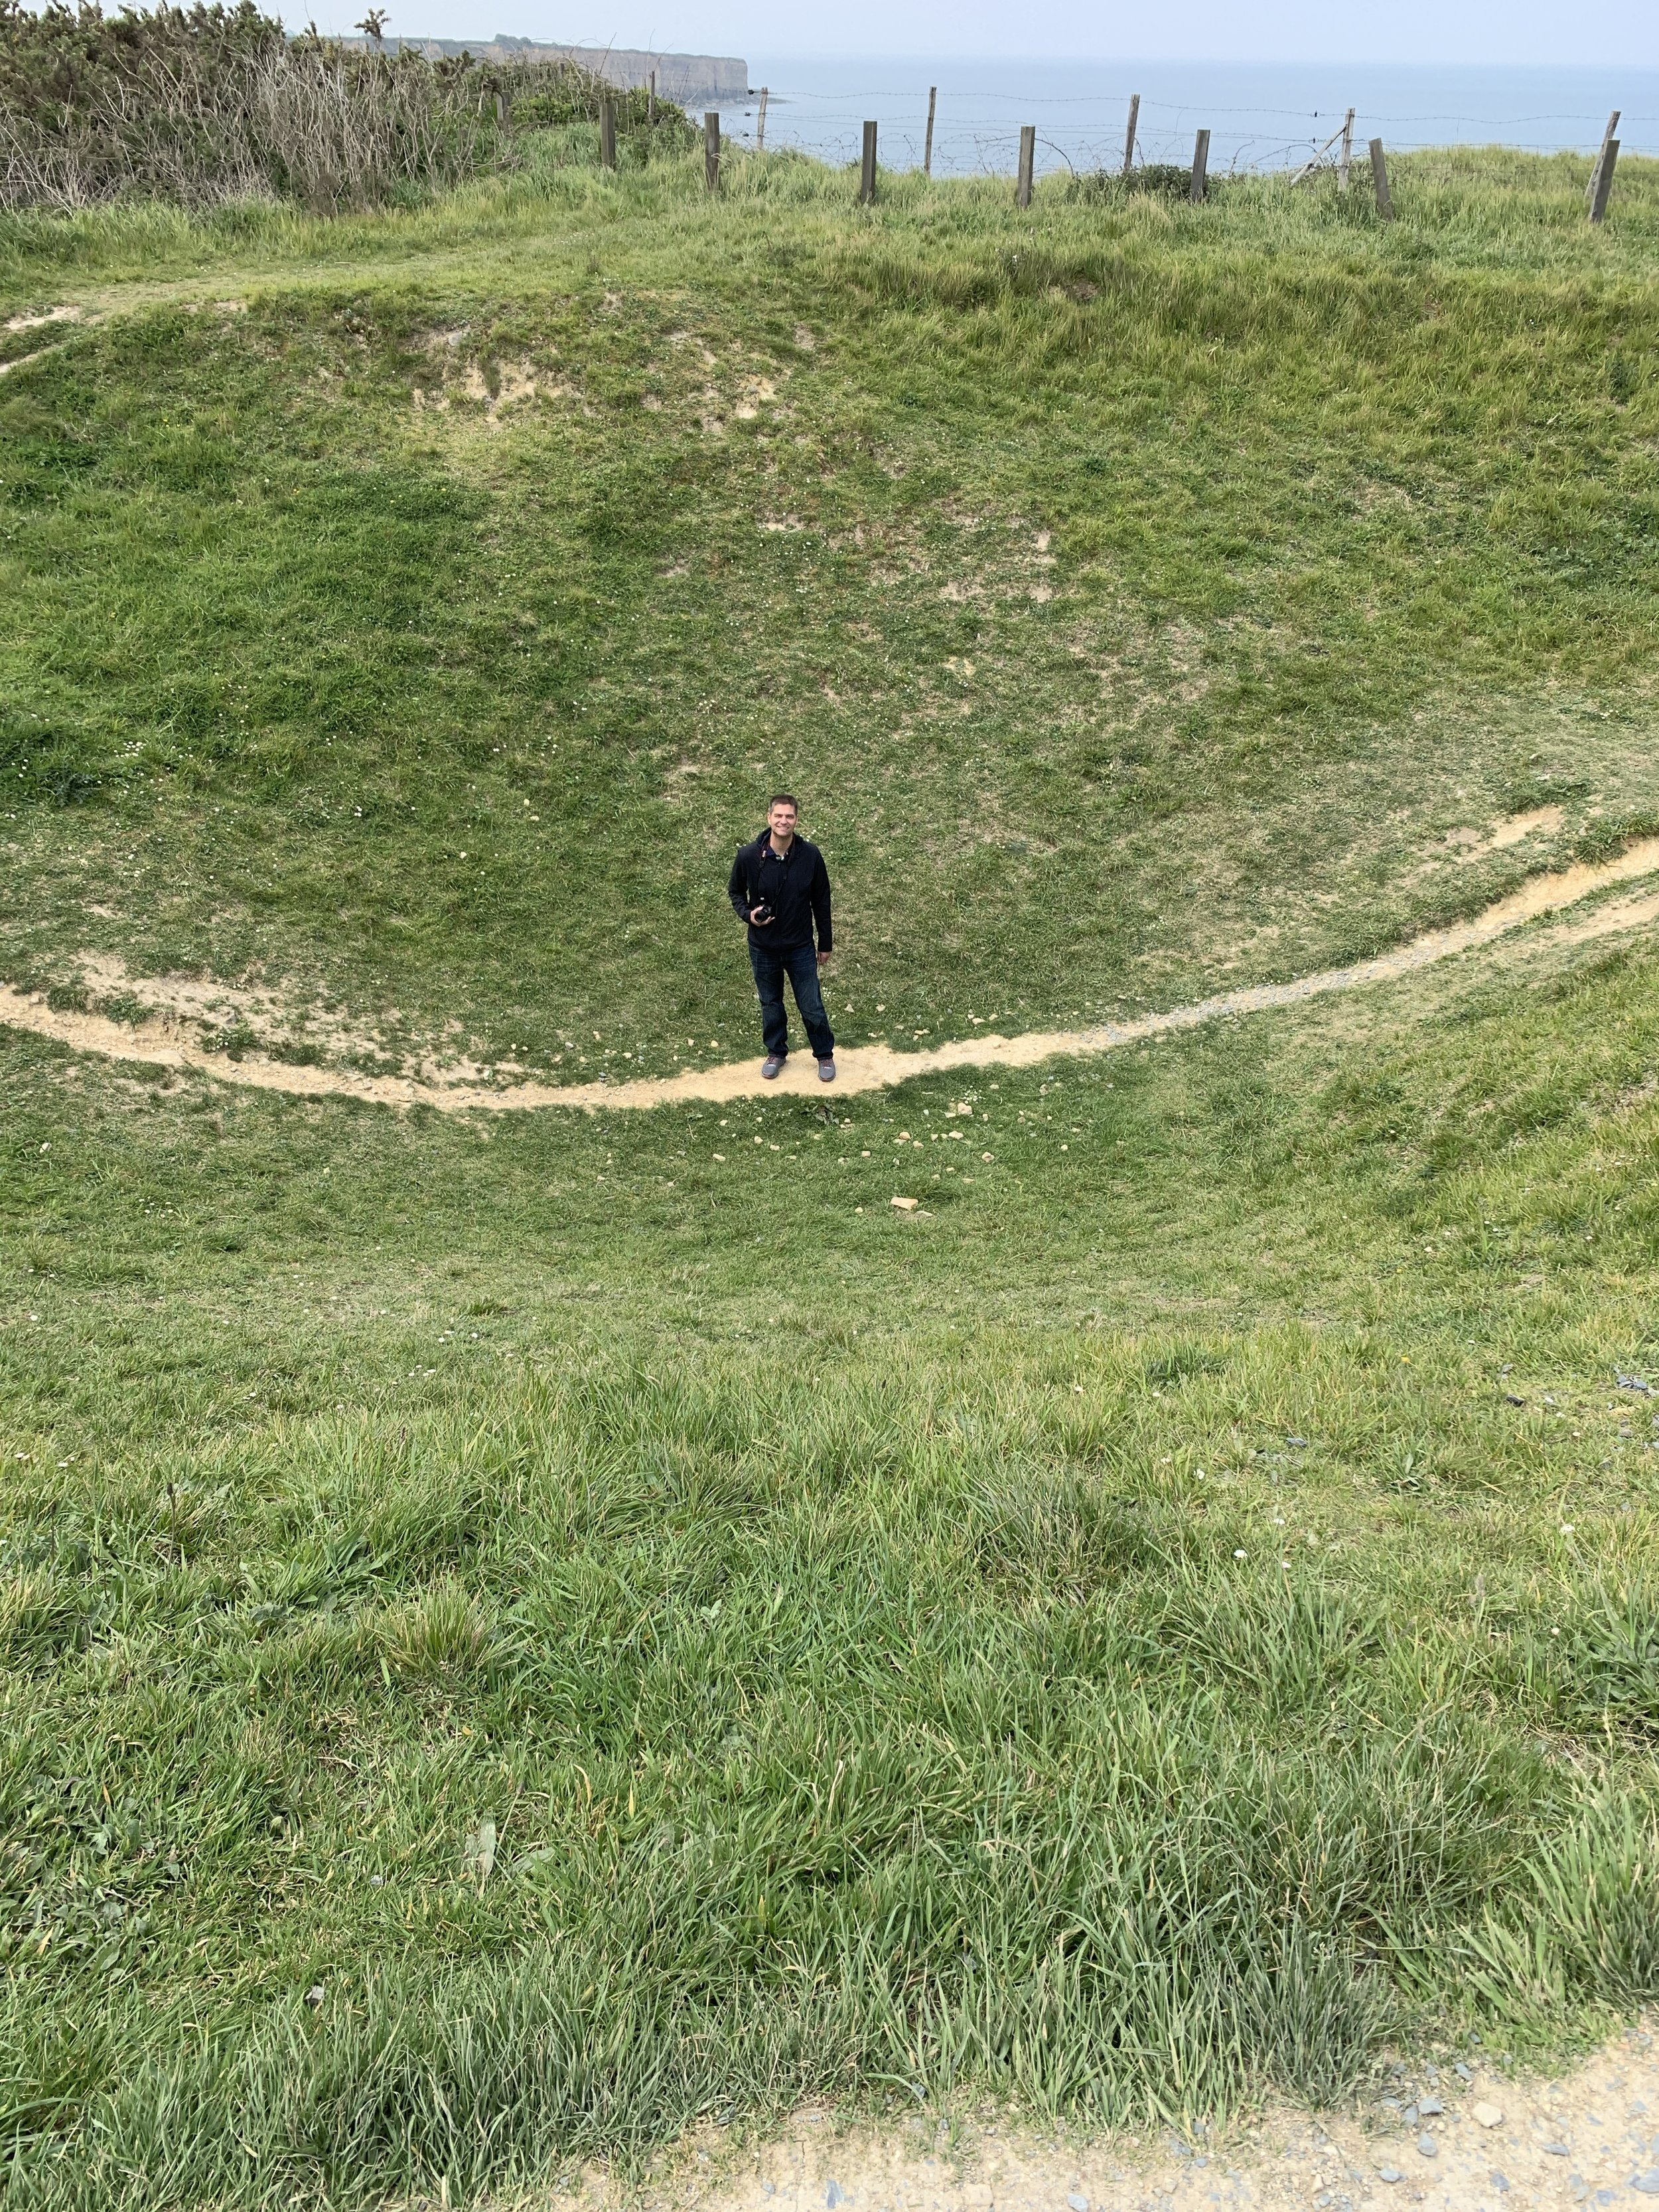 Andrew exploring one of the bomb craters.